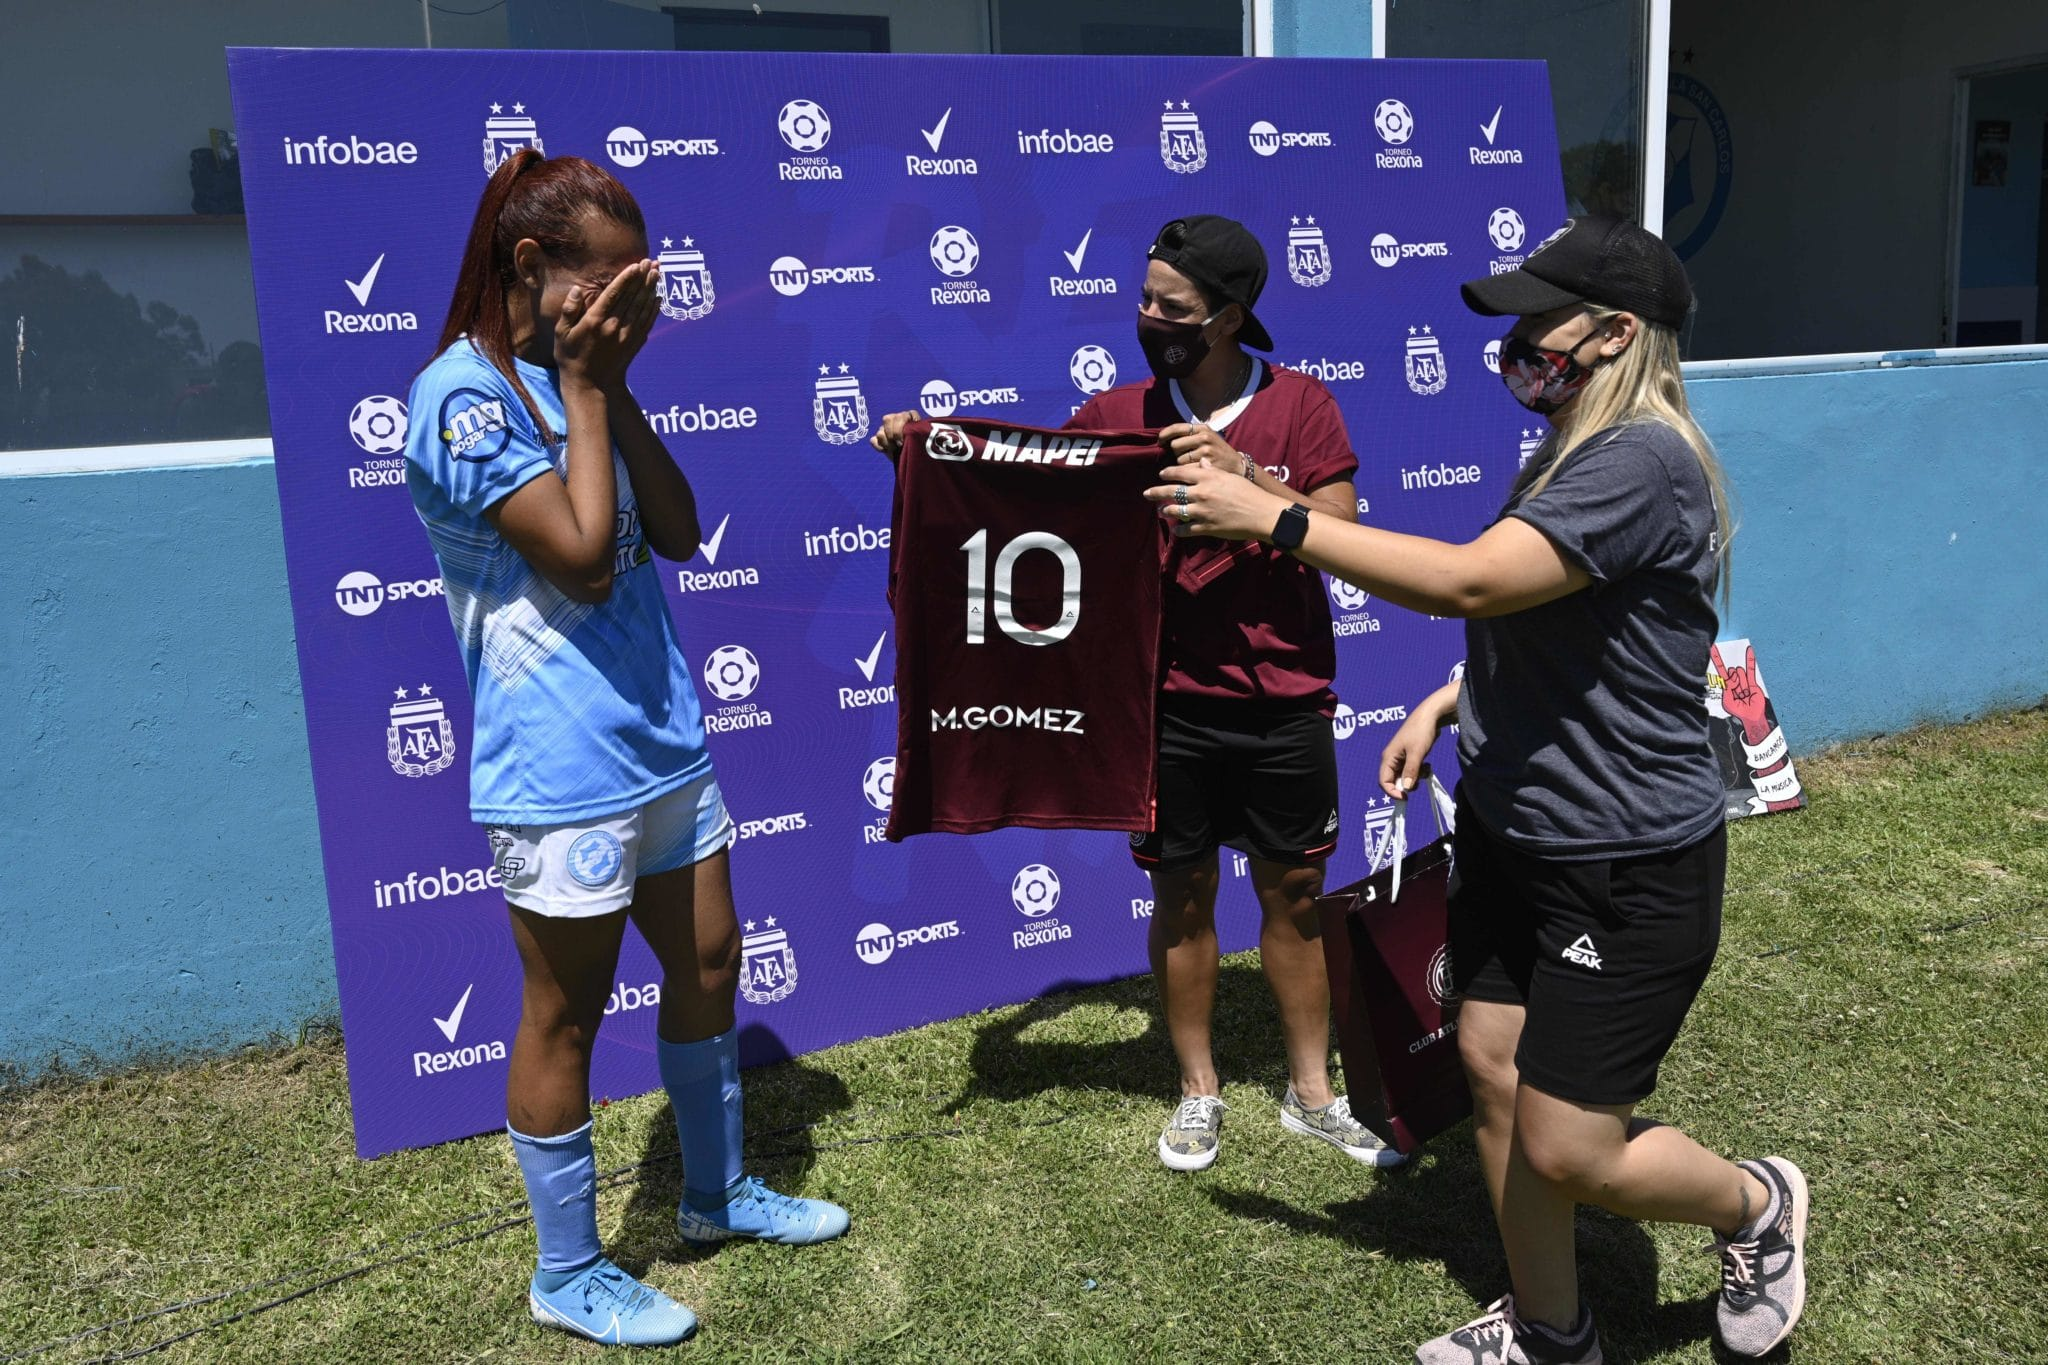 Mara Gomez of Villa San Carlos reacts emotionally as she is given a jersey of Lanus with her name on it